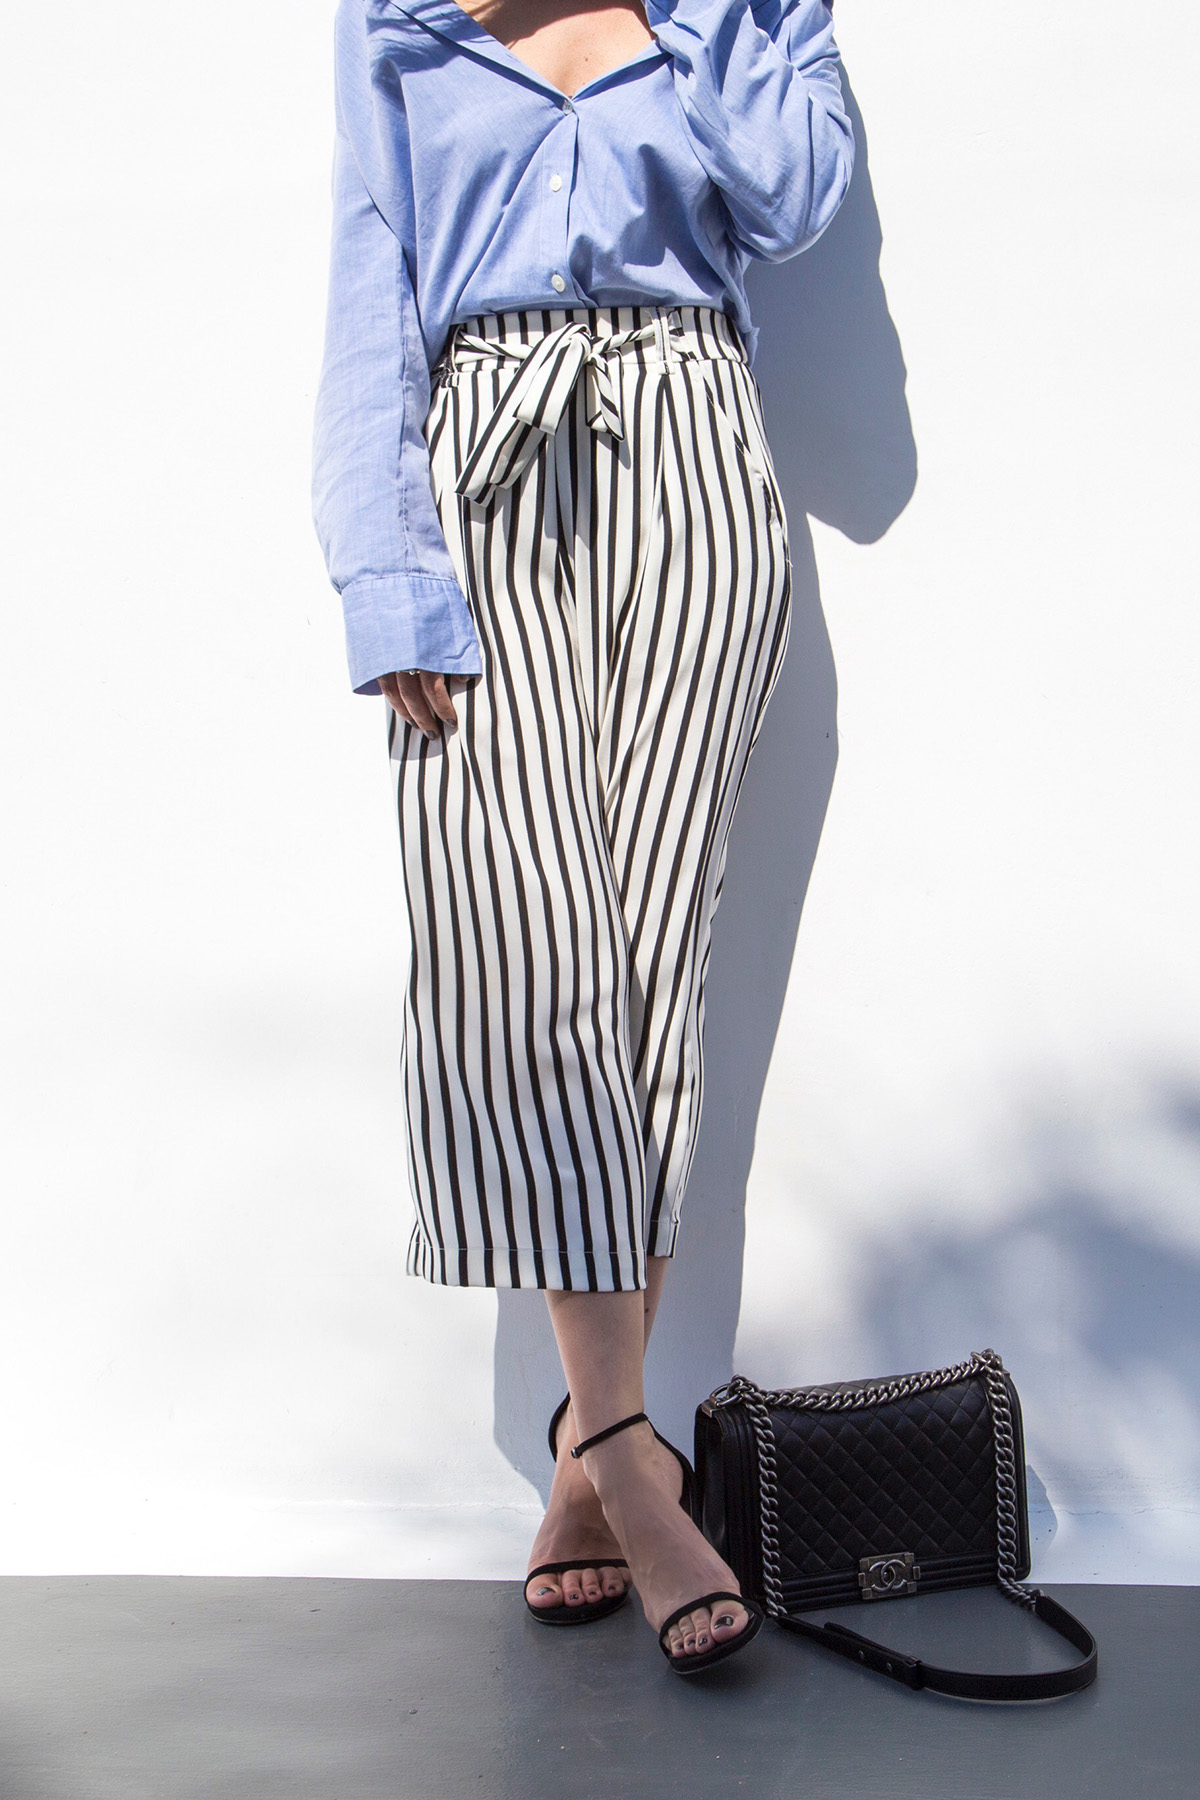 How to Style Striped Culottes